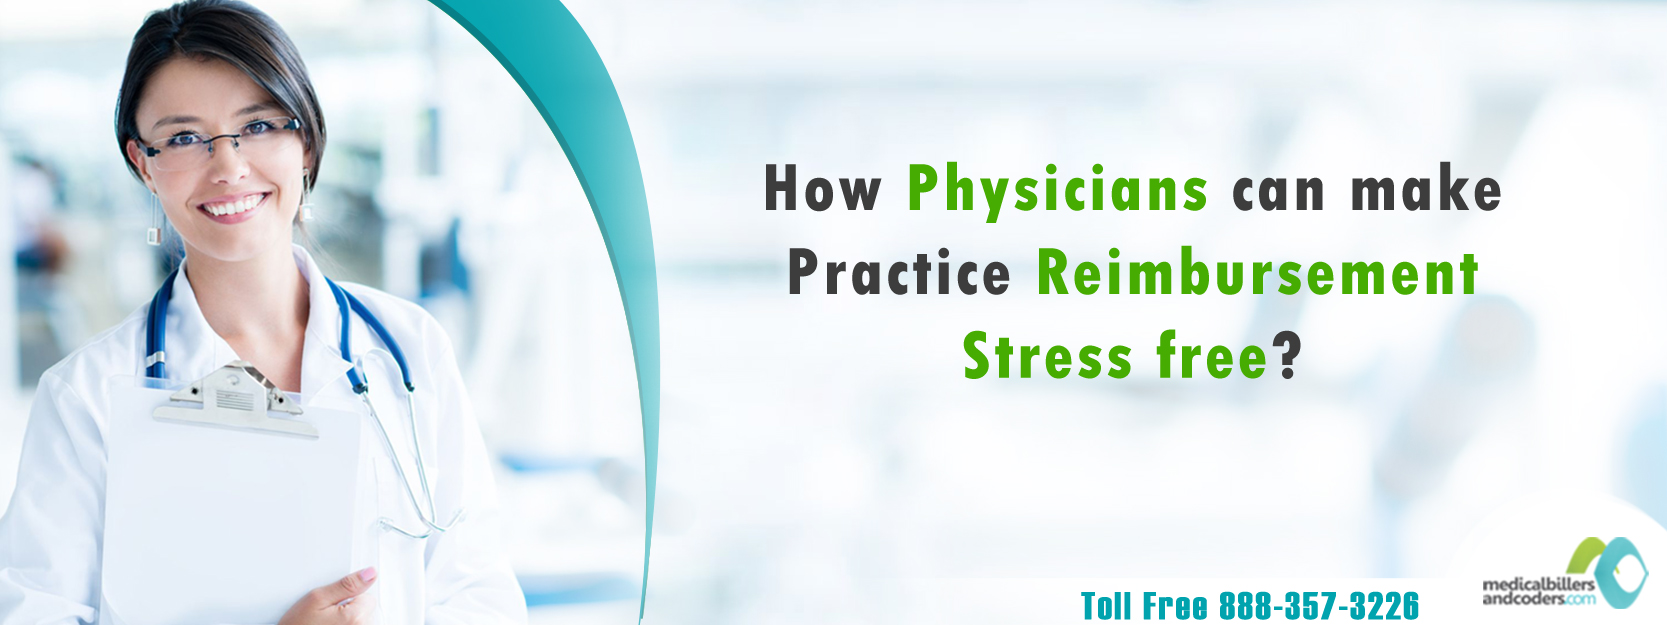 how-physicians-can-make-practice-reimbursement-stress-free